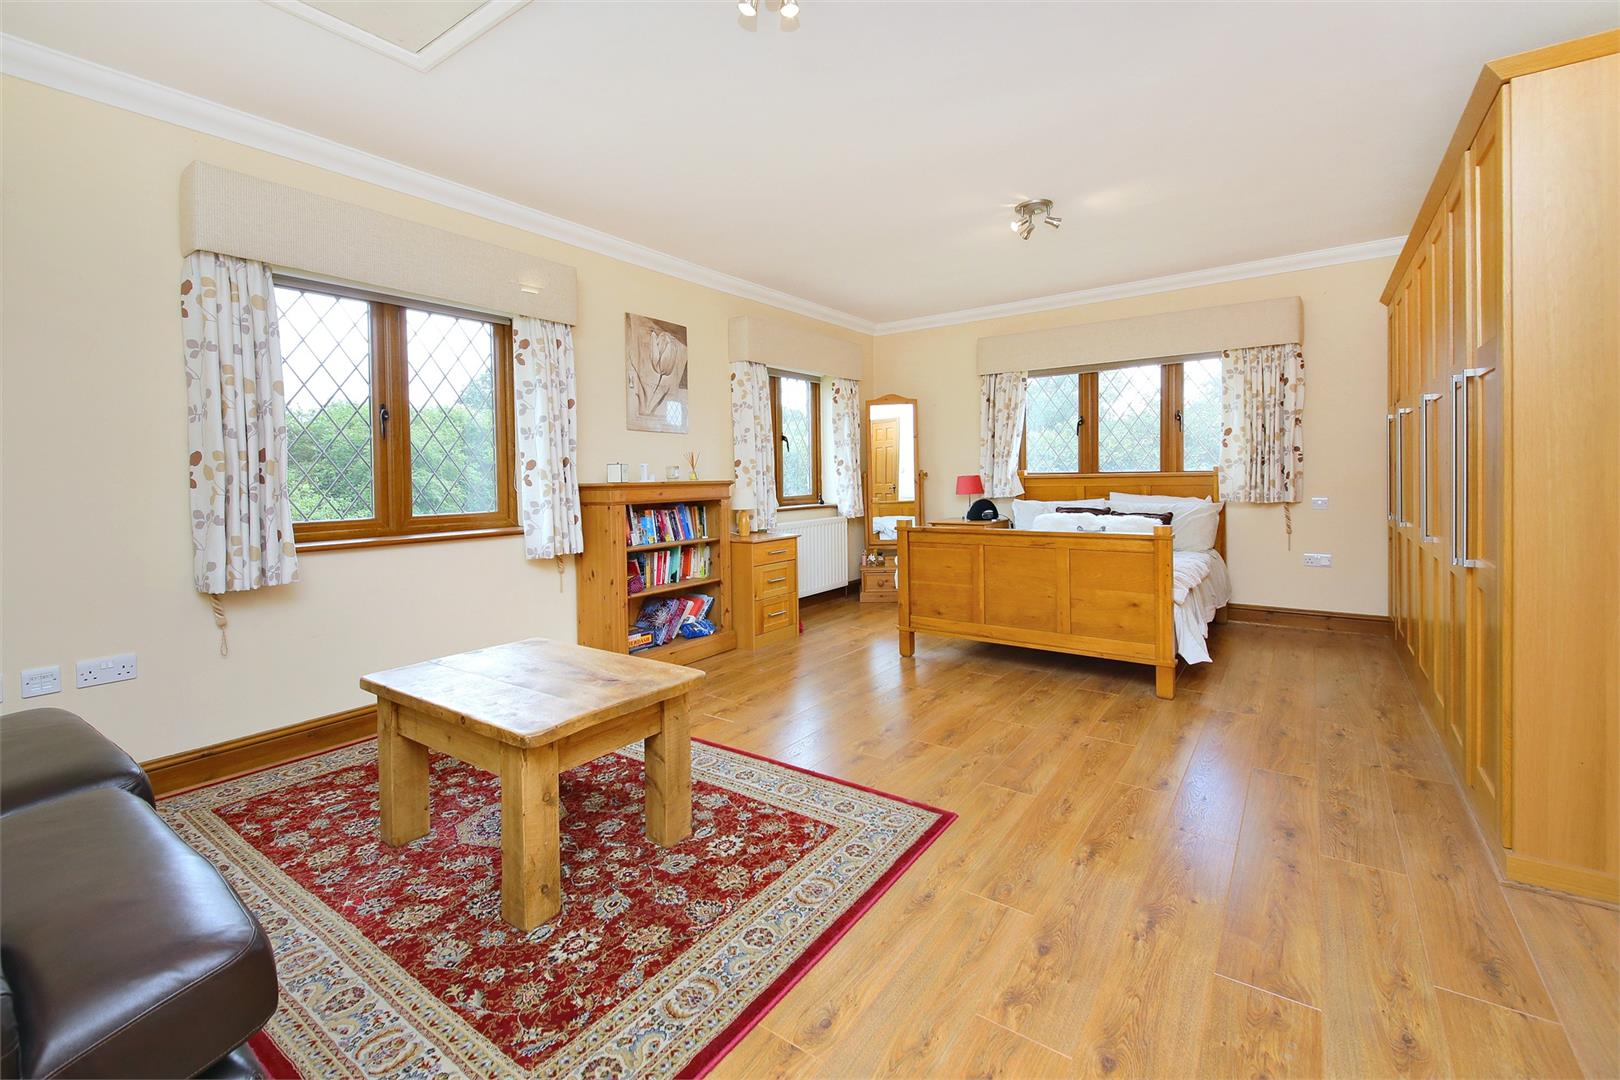 6 bed to rent in Elstree - (Property Image 6)